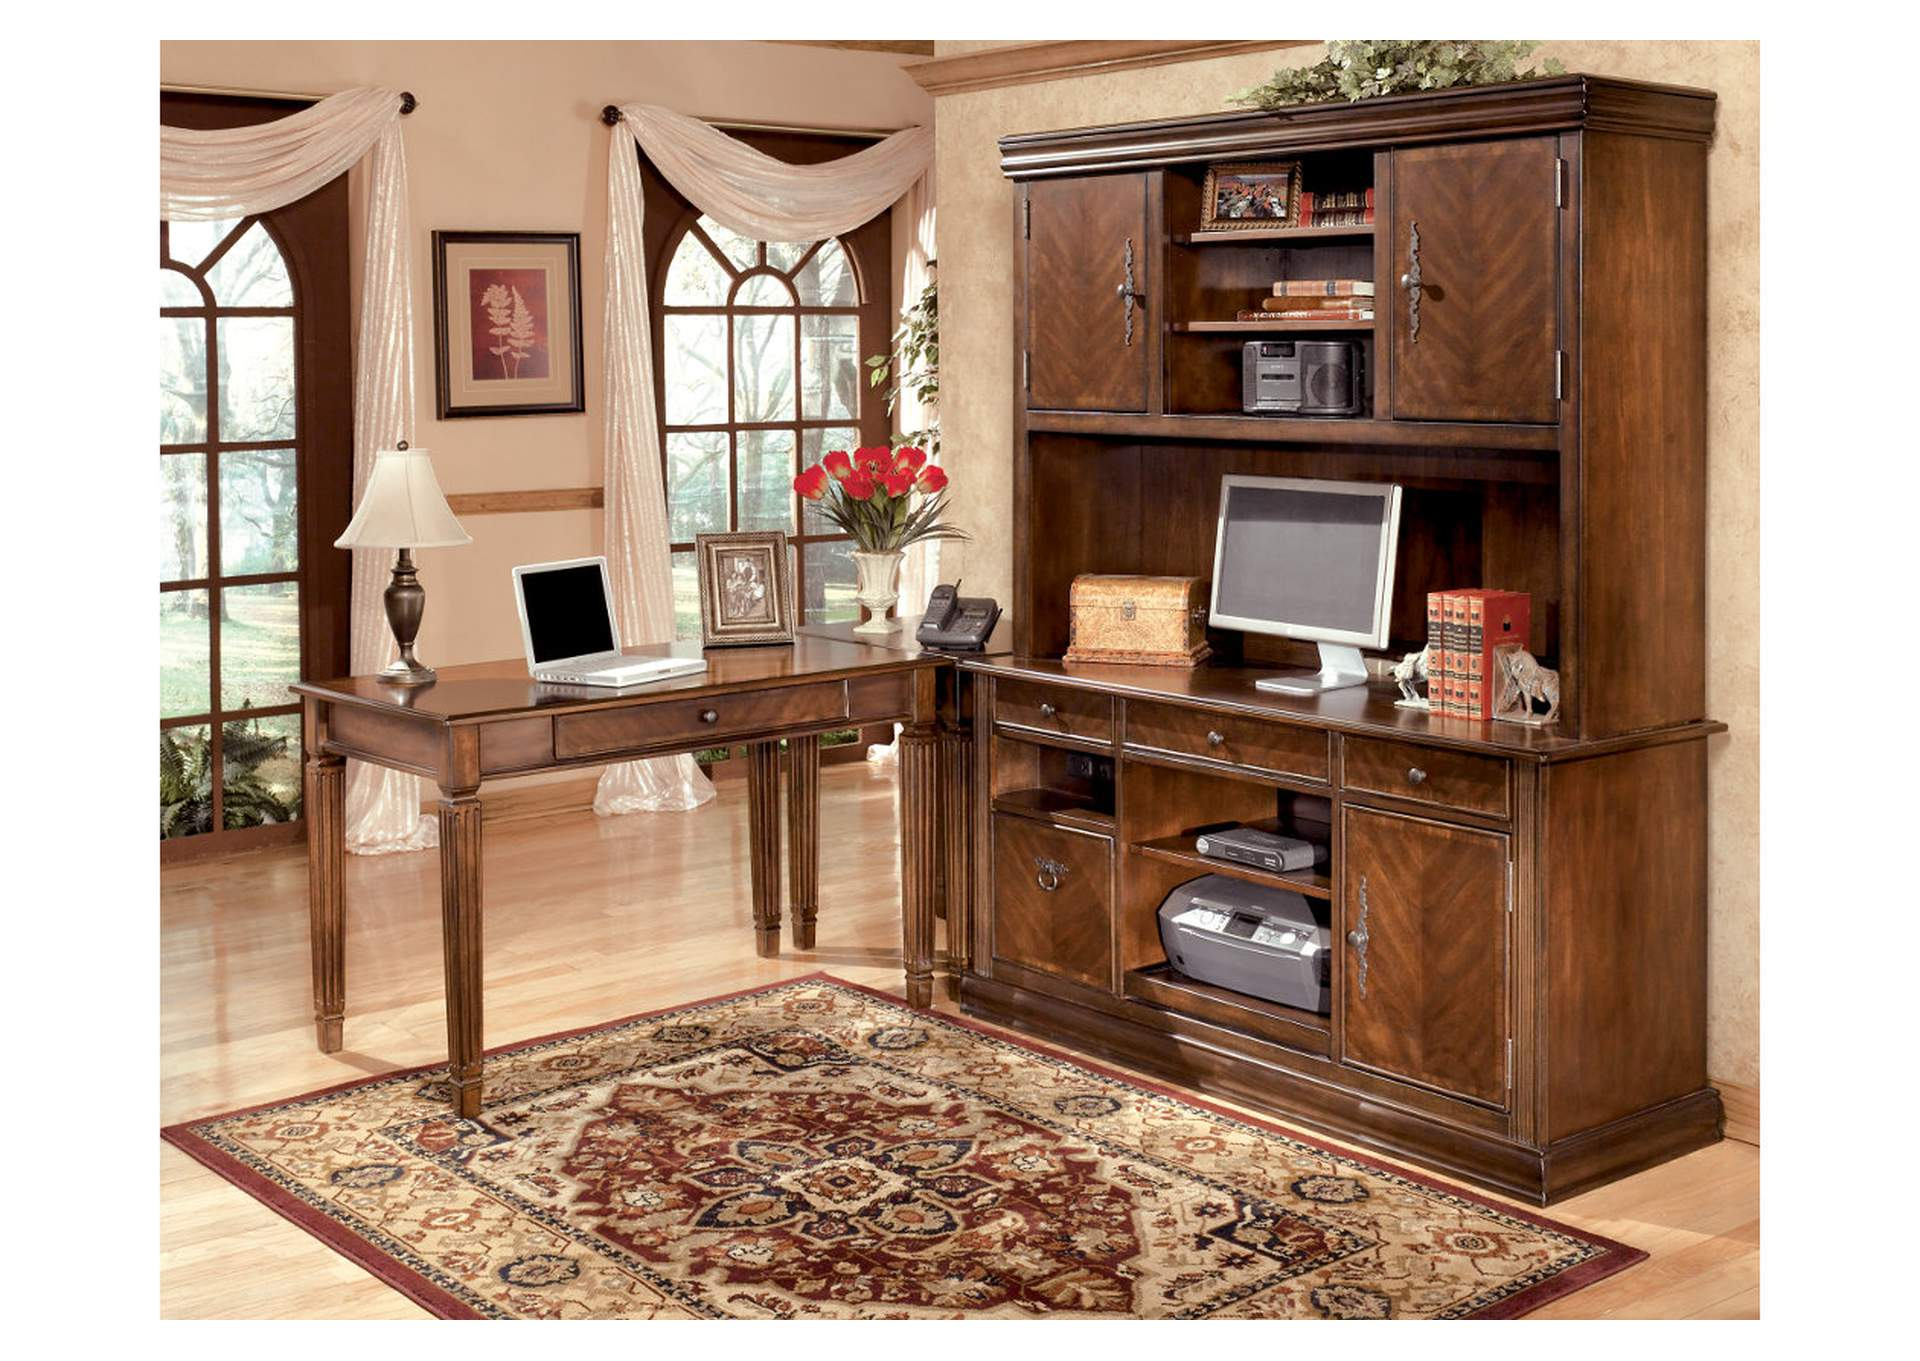 Hamlyn L-Shaped Desk w/ Large Hutch & Credenza,Signature Design by Ashley